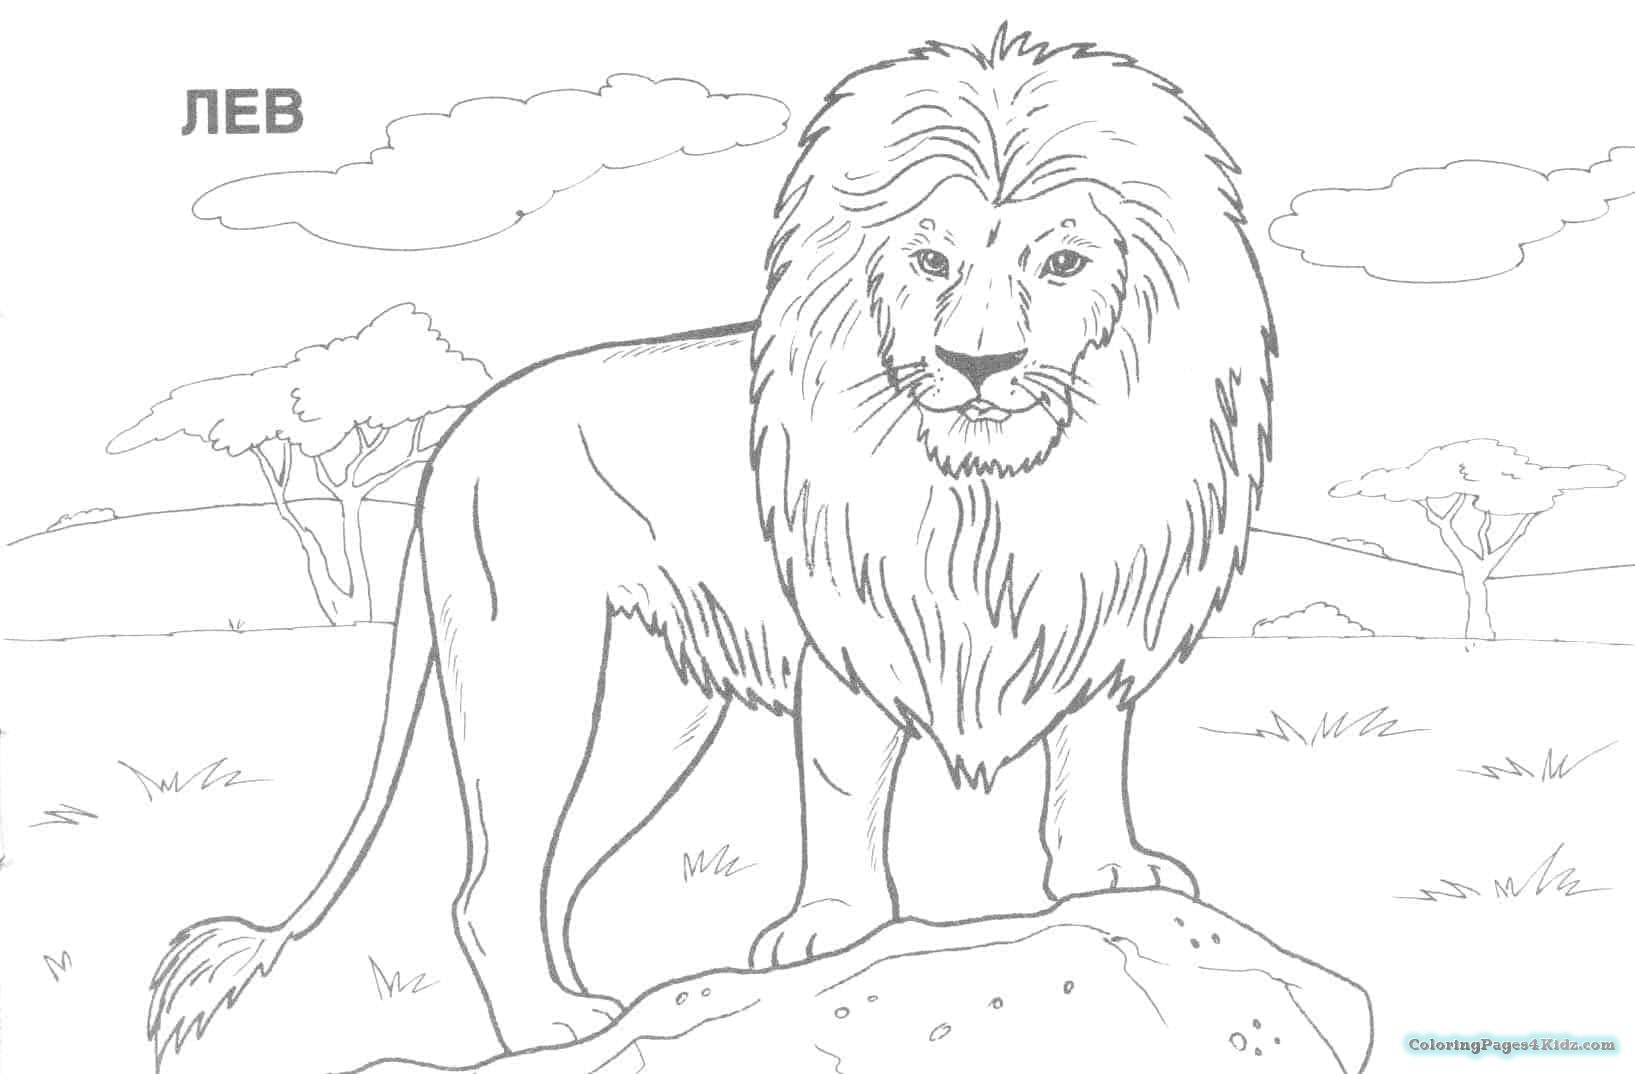 africa animals coloring pages free coloring pages african animals coloring pages for kids pages coloring animals africa